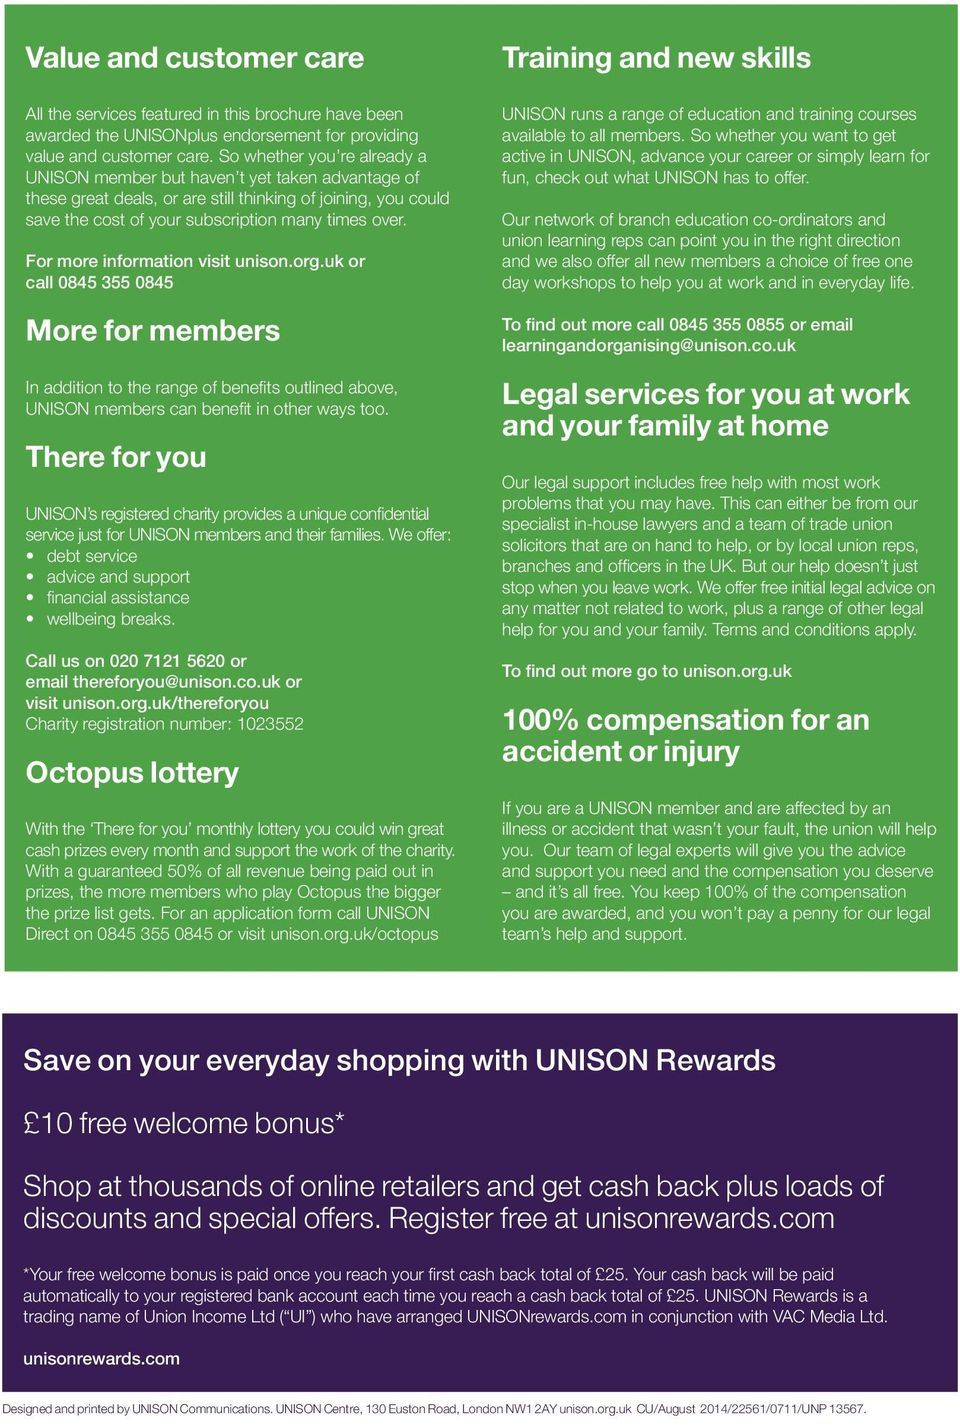 For more information visit unison.org.uk or call 0845 355 0845 More for members In addition to the range of benefits outlined above, UNISON members can benefit in other ways too.